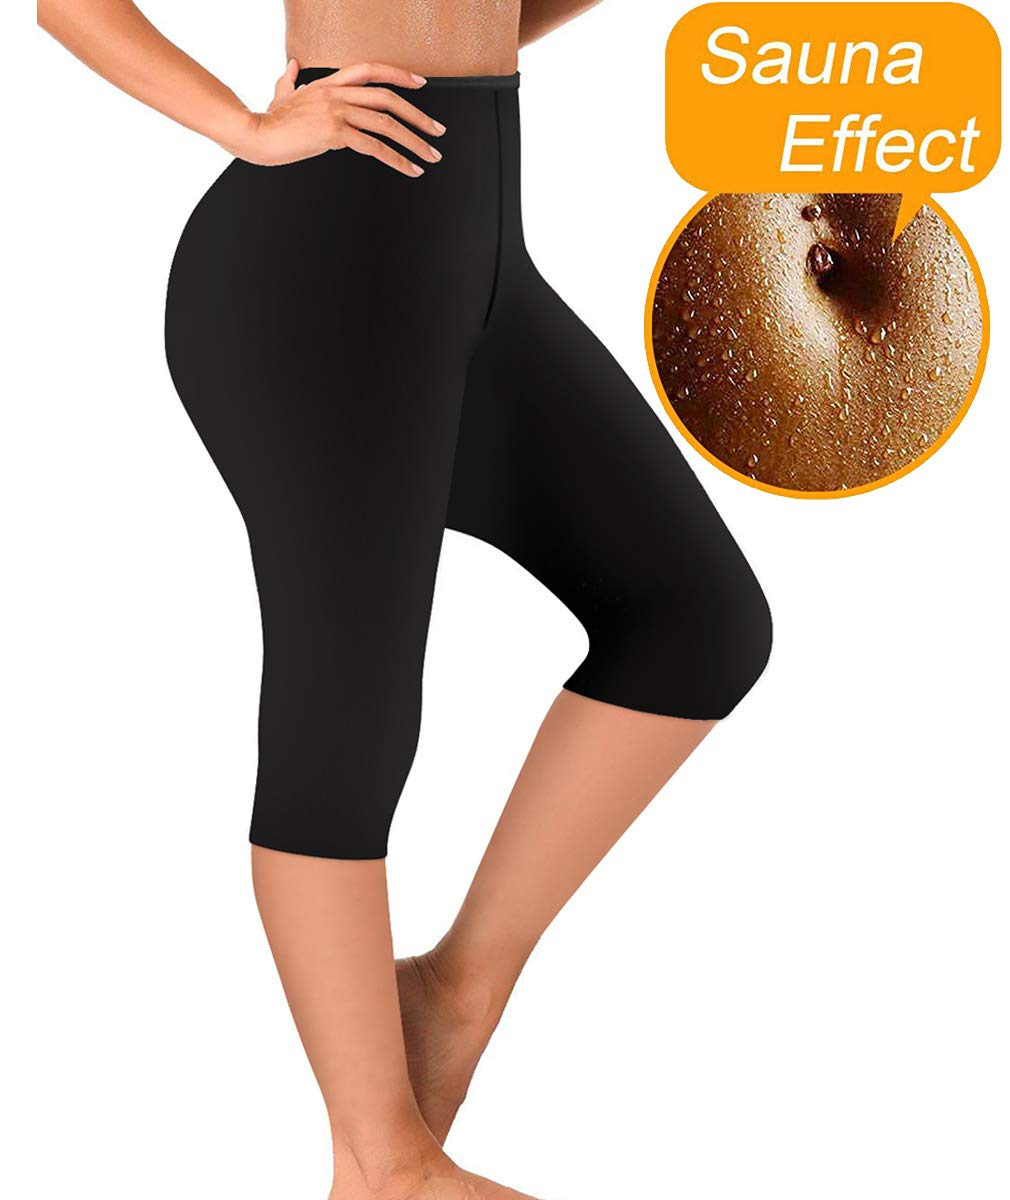 29b7f81f81 Sauna slimming workout pants are cellulite pants that help reduce fatty and  our weight loss yoga shaper pants give you smoother feeling.Our sauna pants  heat ...